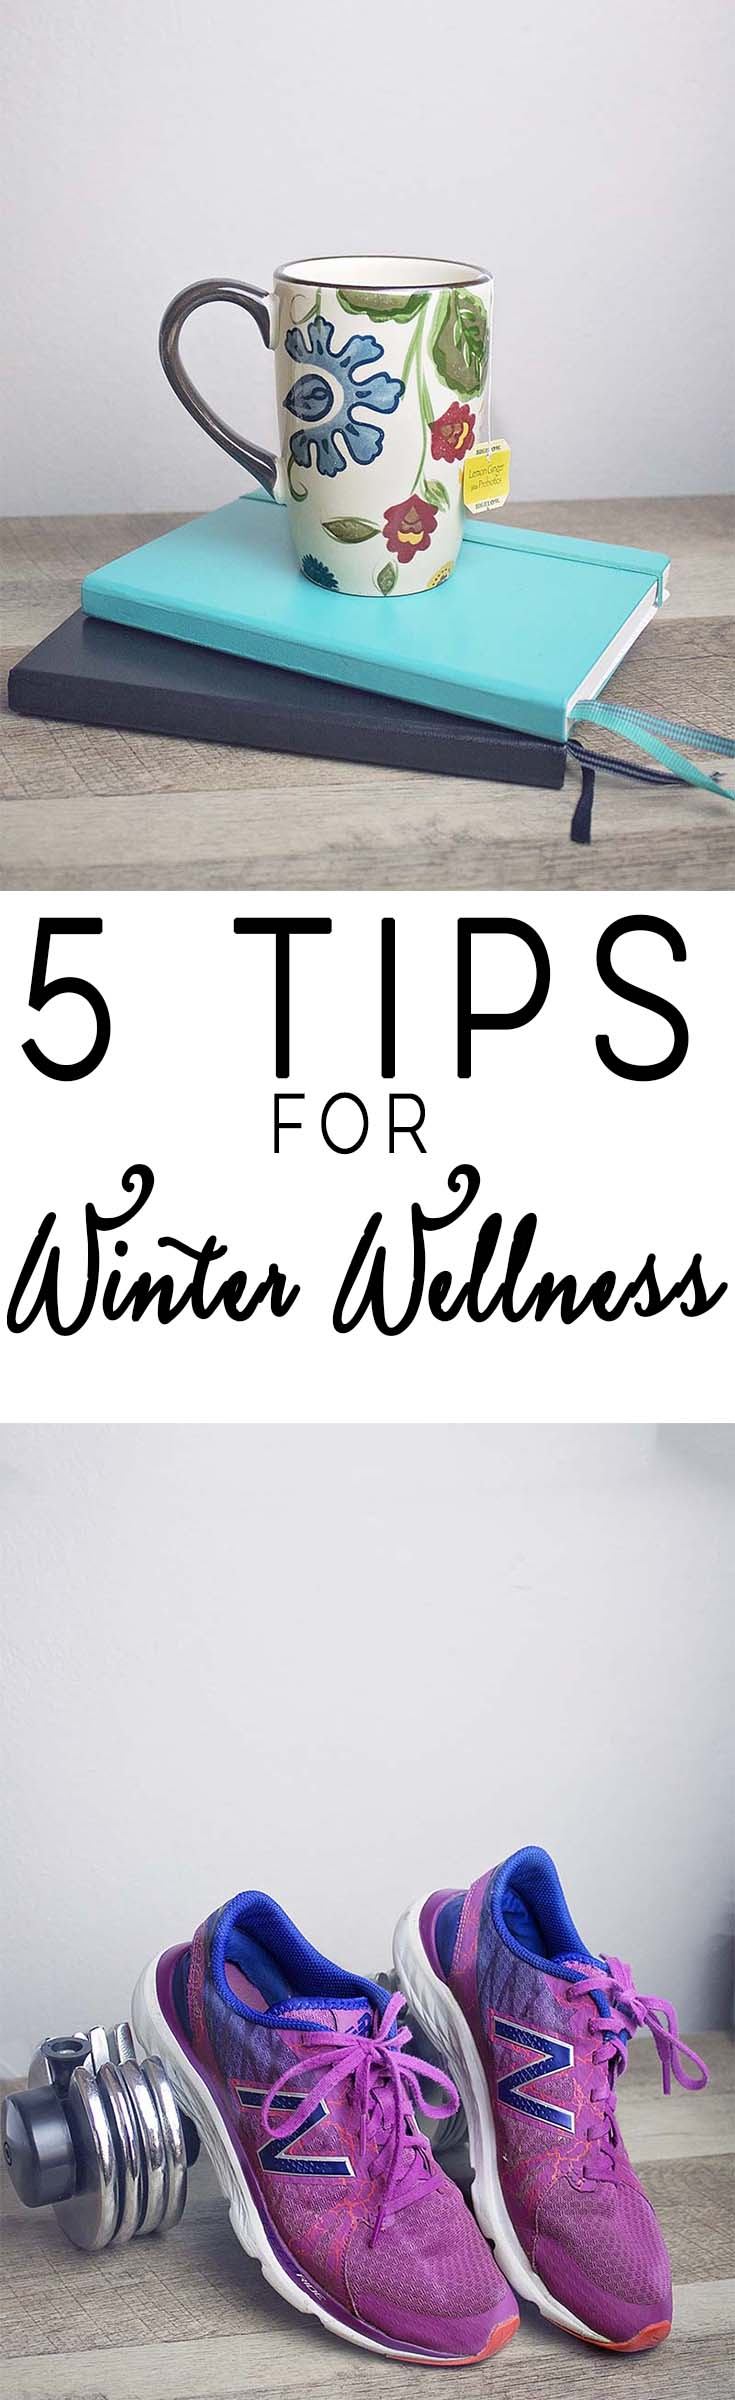 5 Tips For Winter Wellness